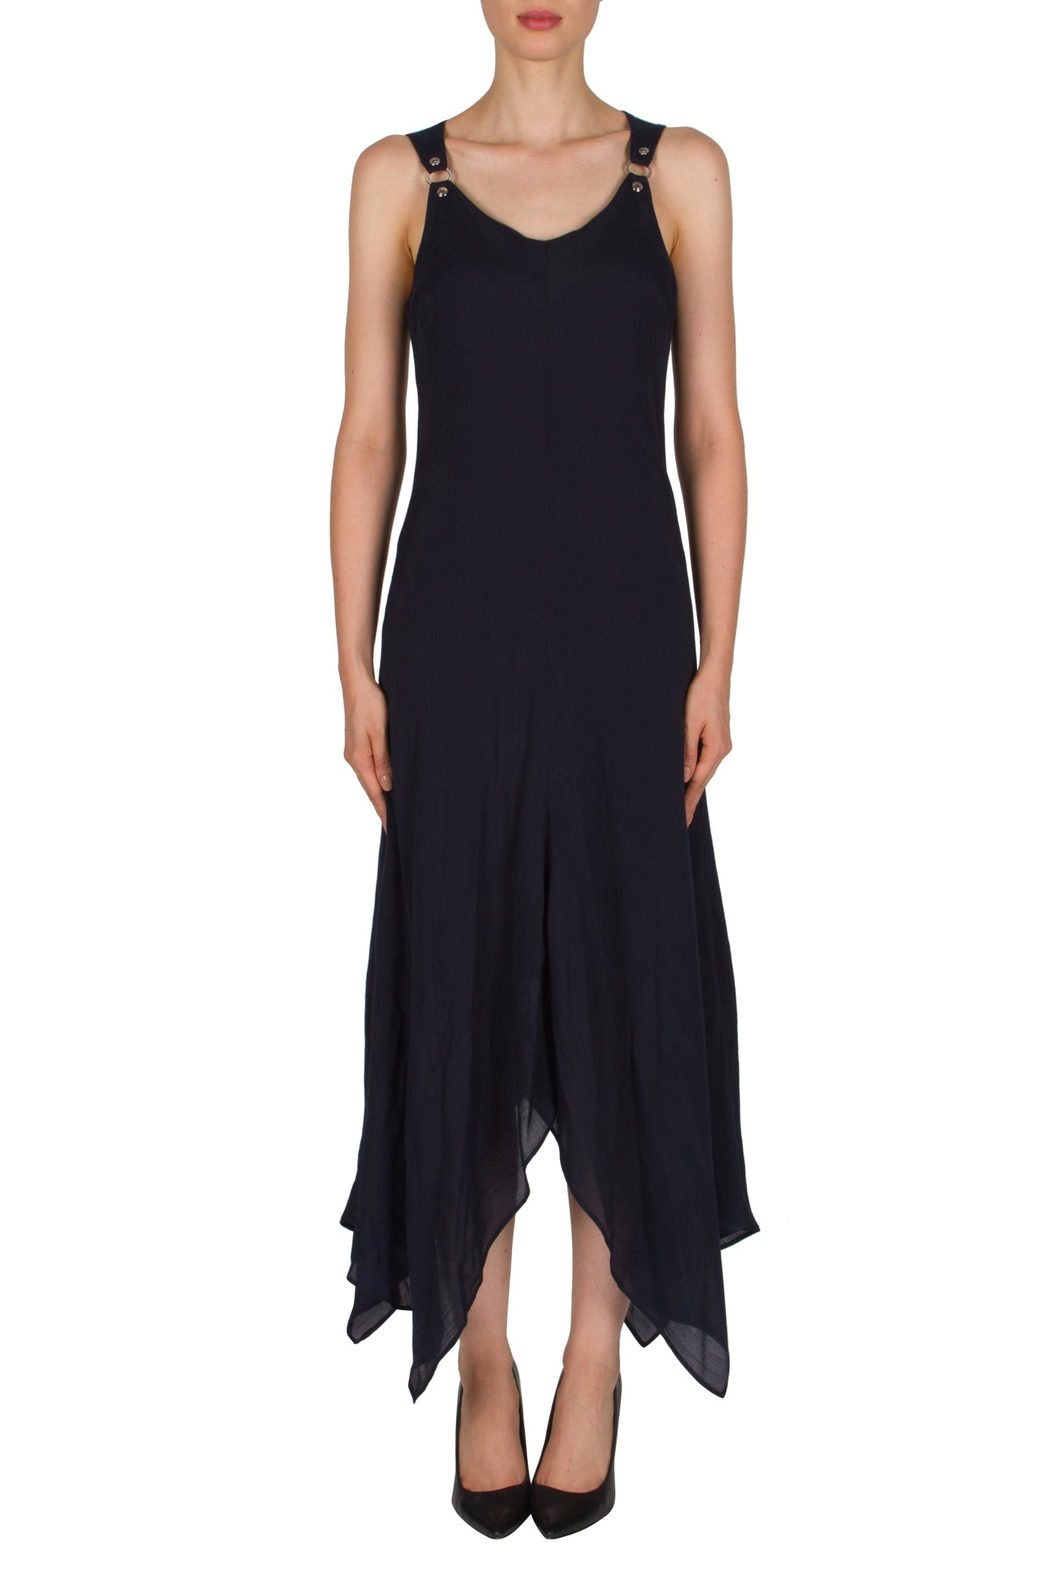 Joseph Ribkoff Lined Tank Dress - Front Cropped Image